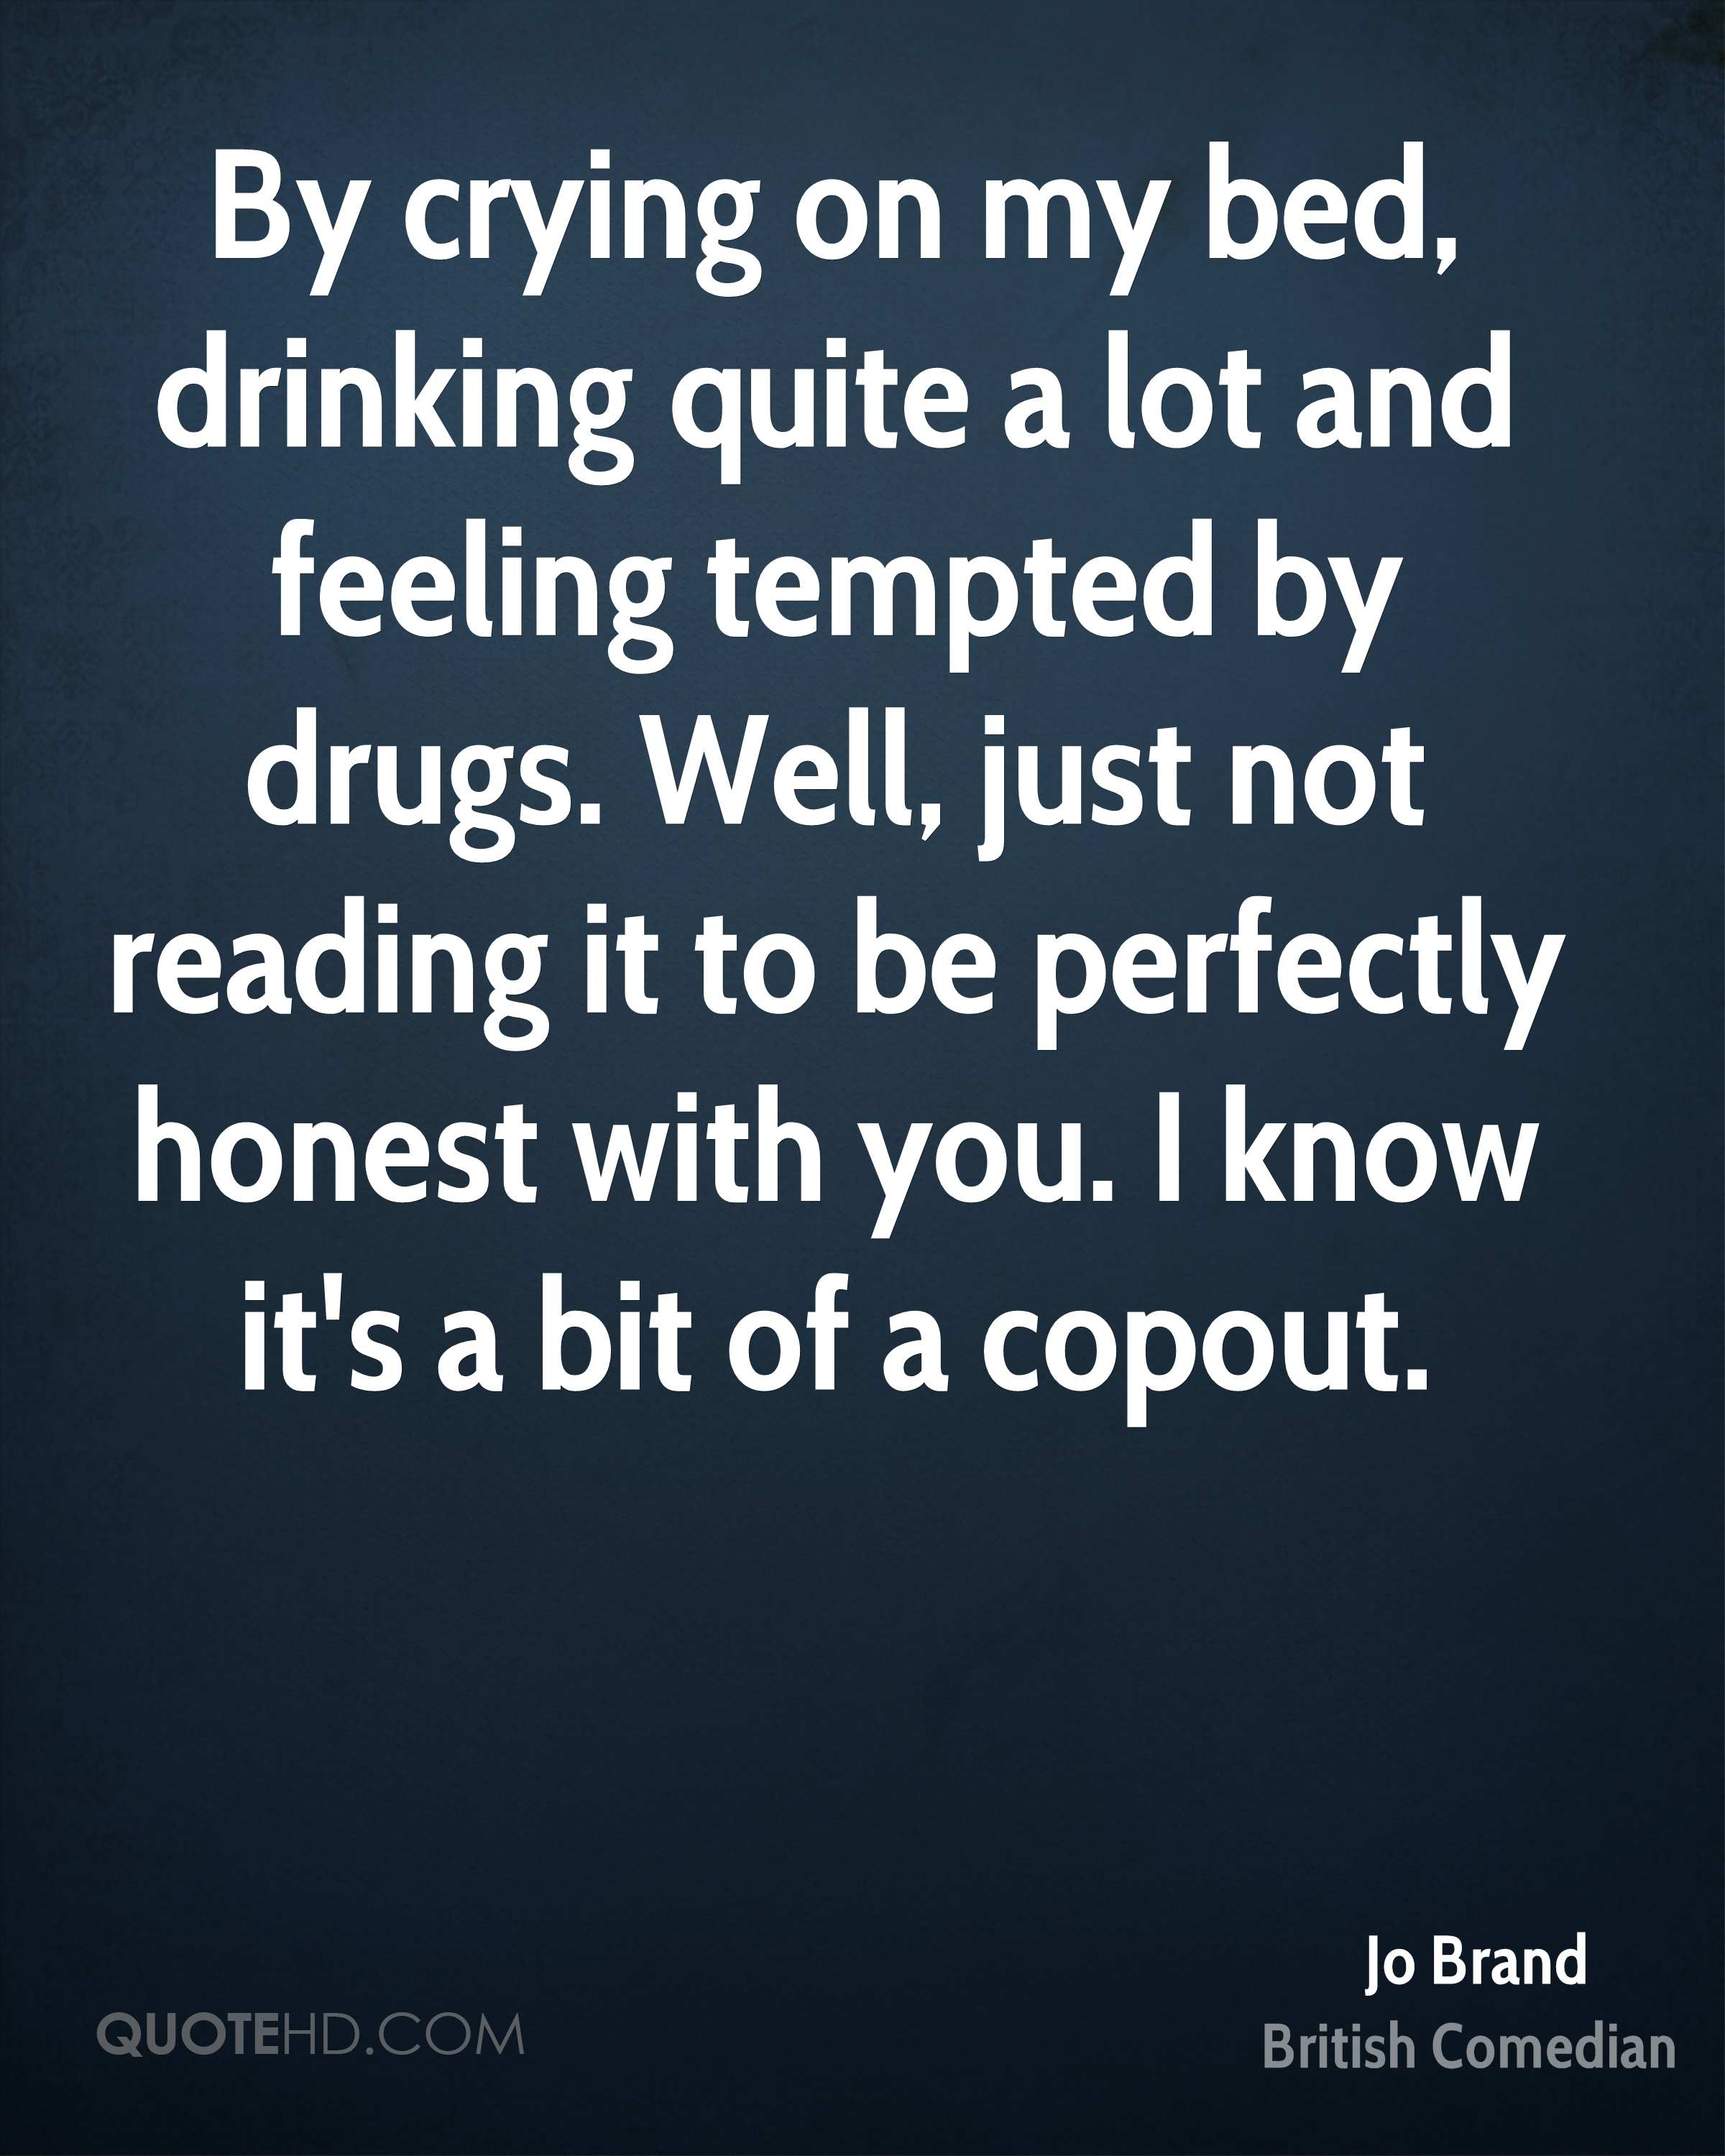 By crying on my bed, drinking quite a lot and feeling tempted by drugs. Well, just not reading it to be perfectly honest with you. I know it's a bit of a copout.